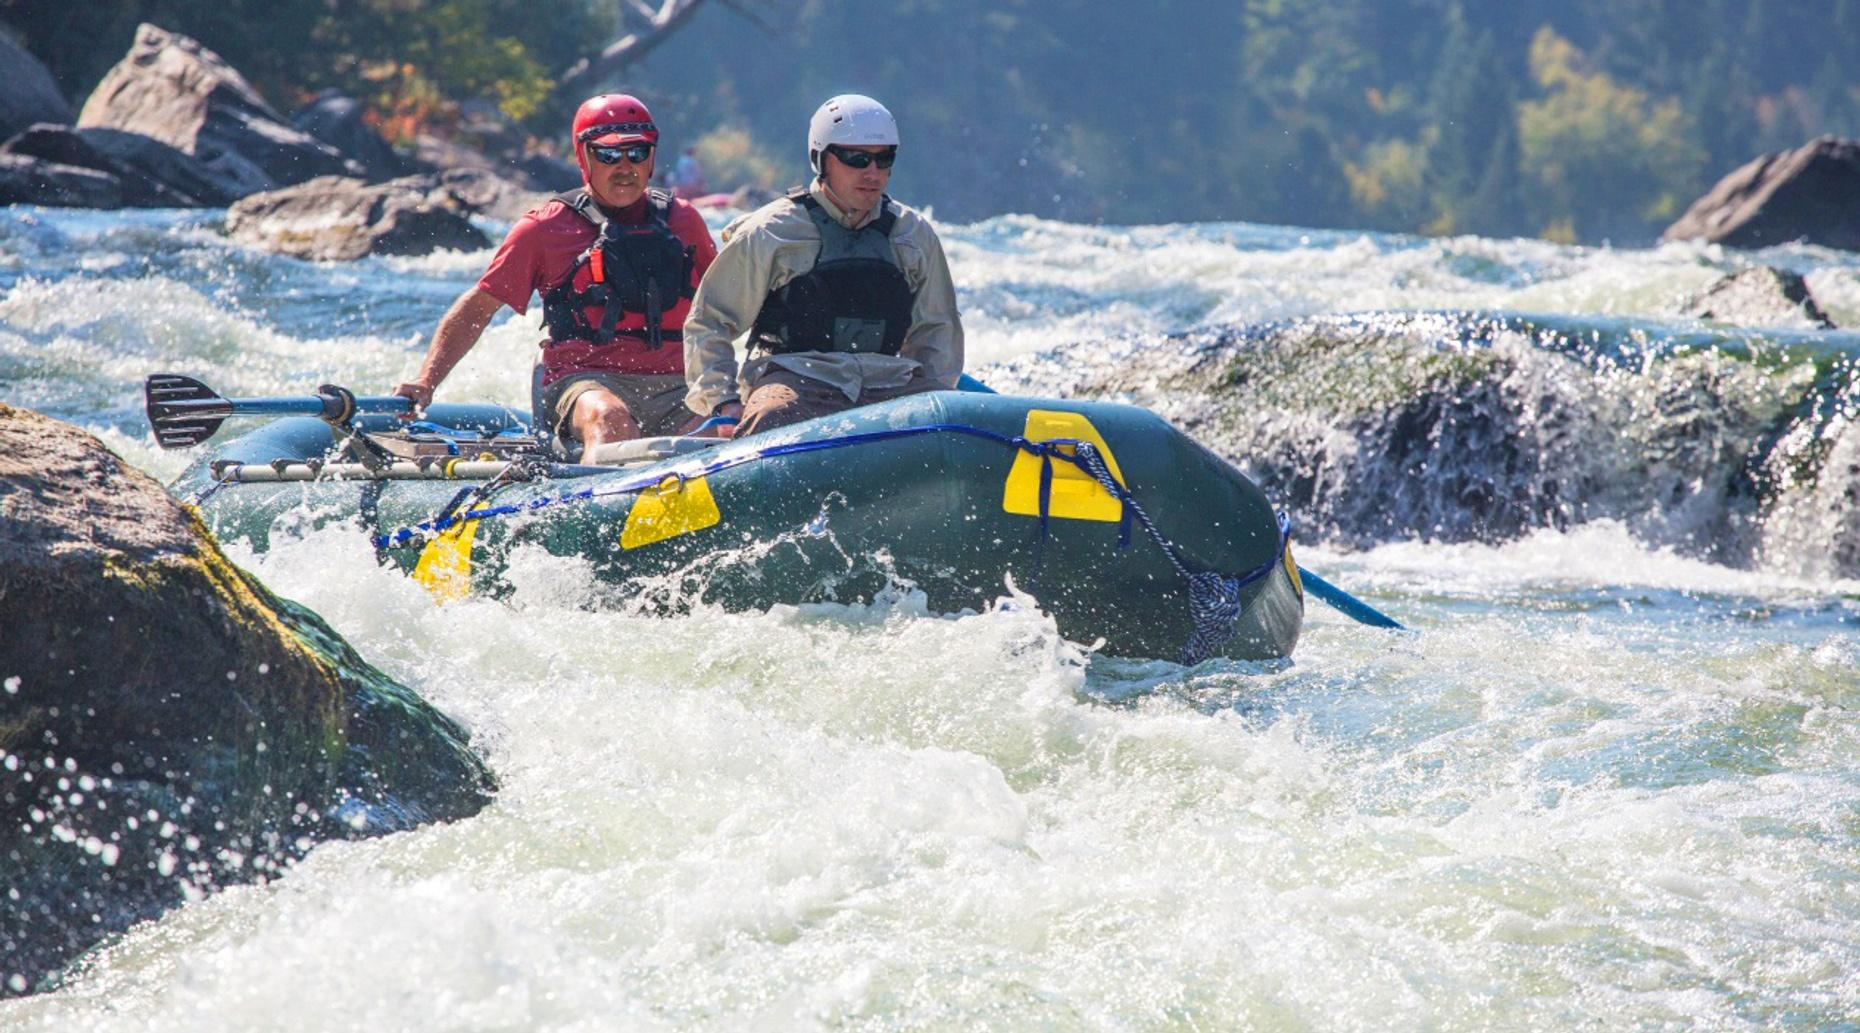 Swiftwater Rescue Technician Rafting Course